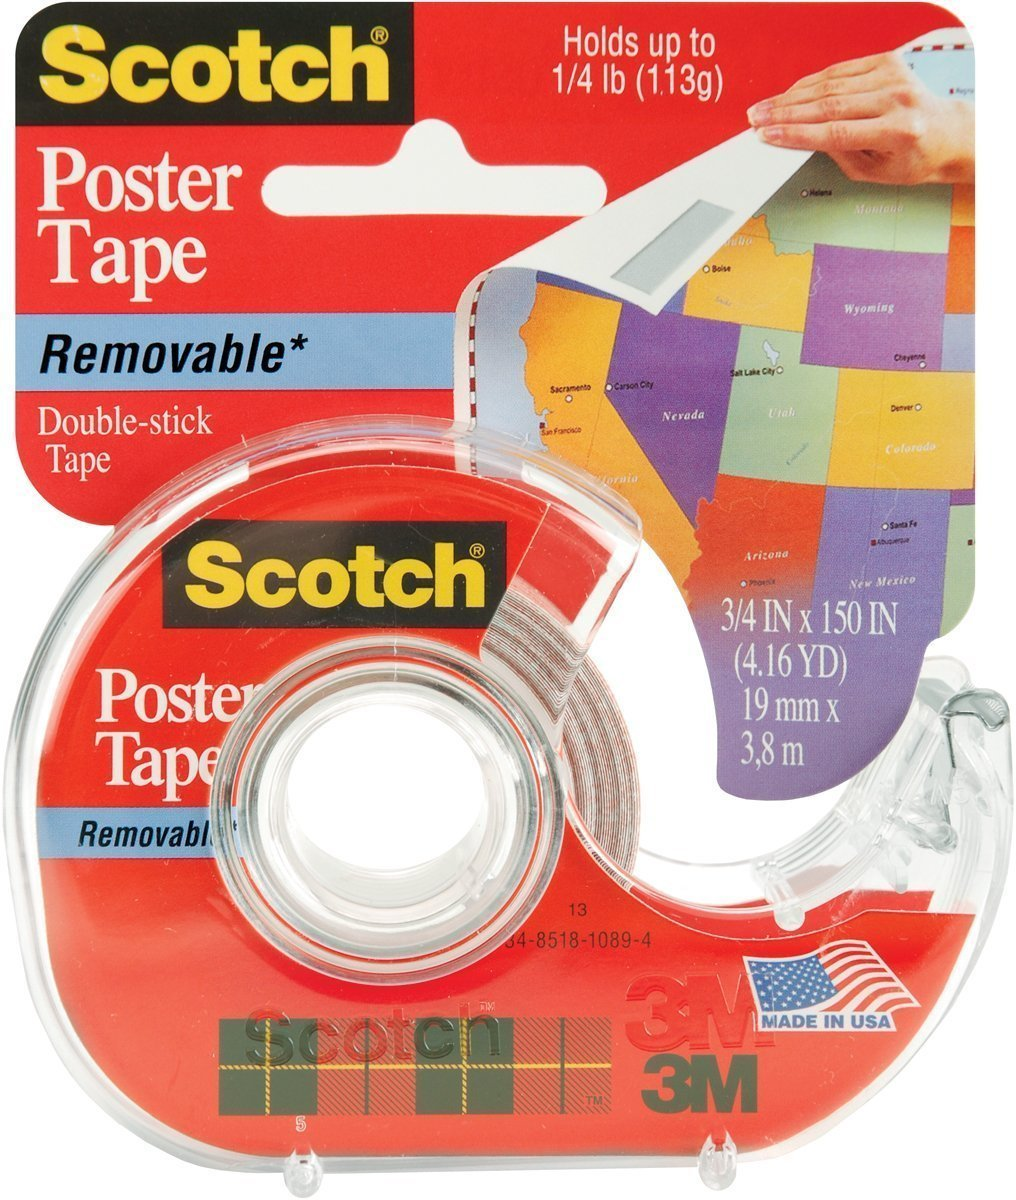 Amazon.com : Scotch Removable Poster Tape, 3/4-inch x 150-inches, Clear, 1  Roll/Pack (109) : Electrical Tape : Office Products